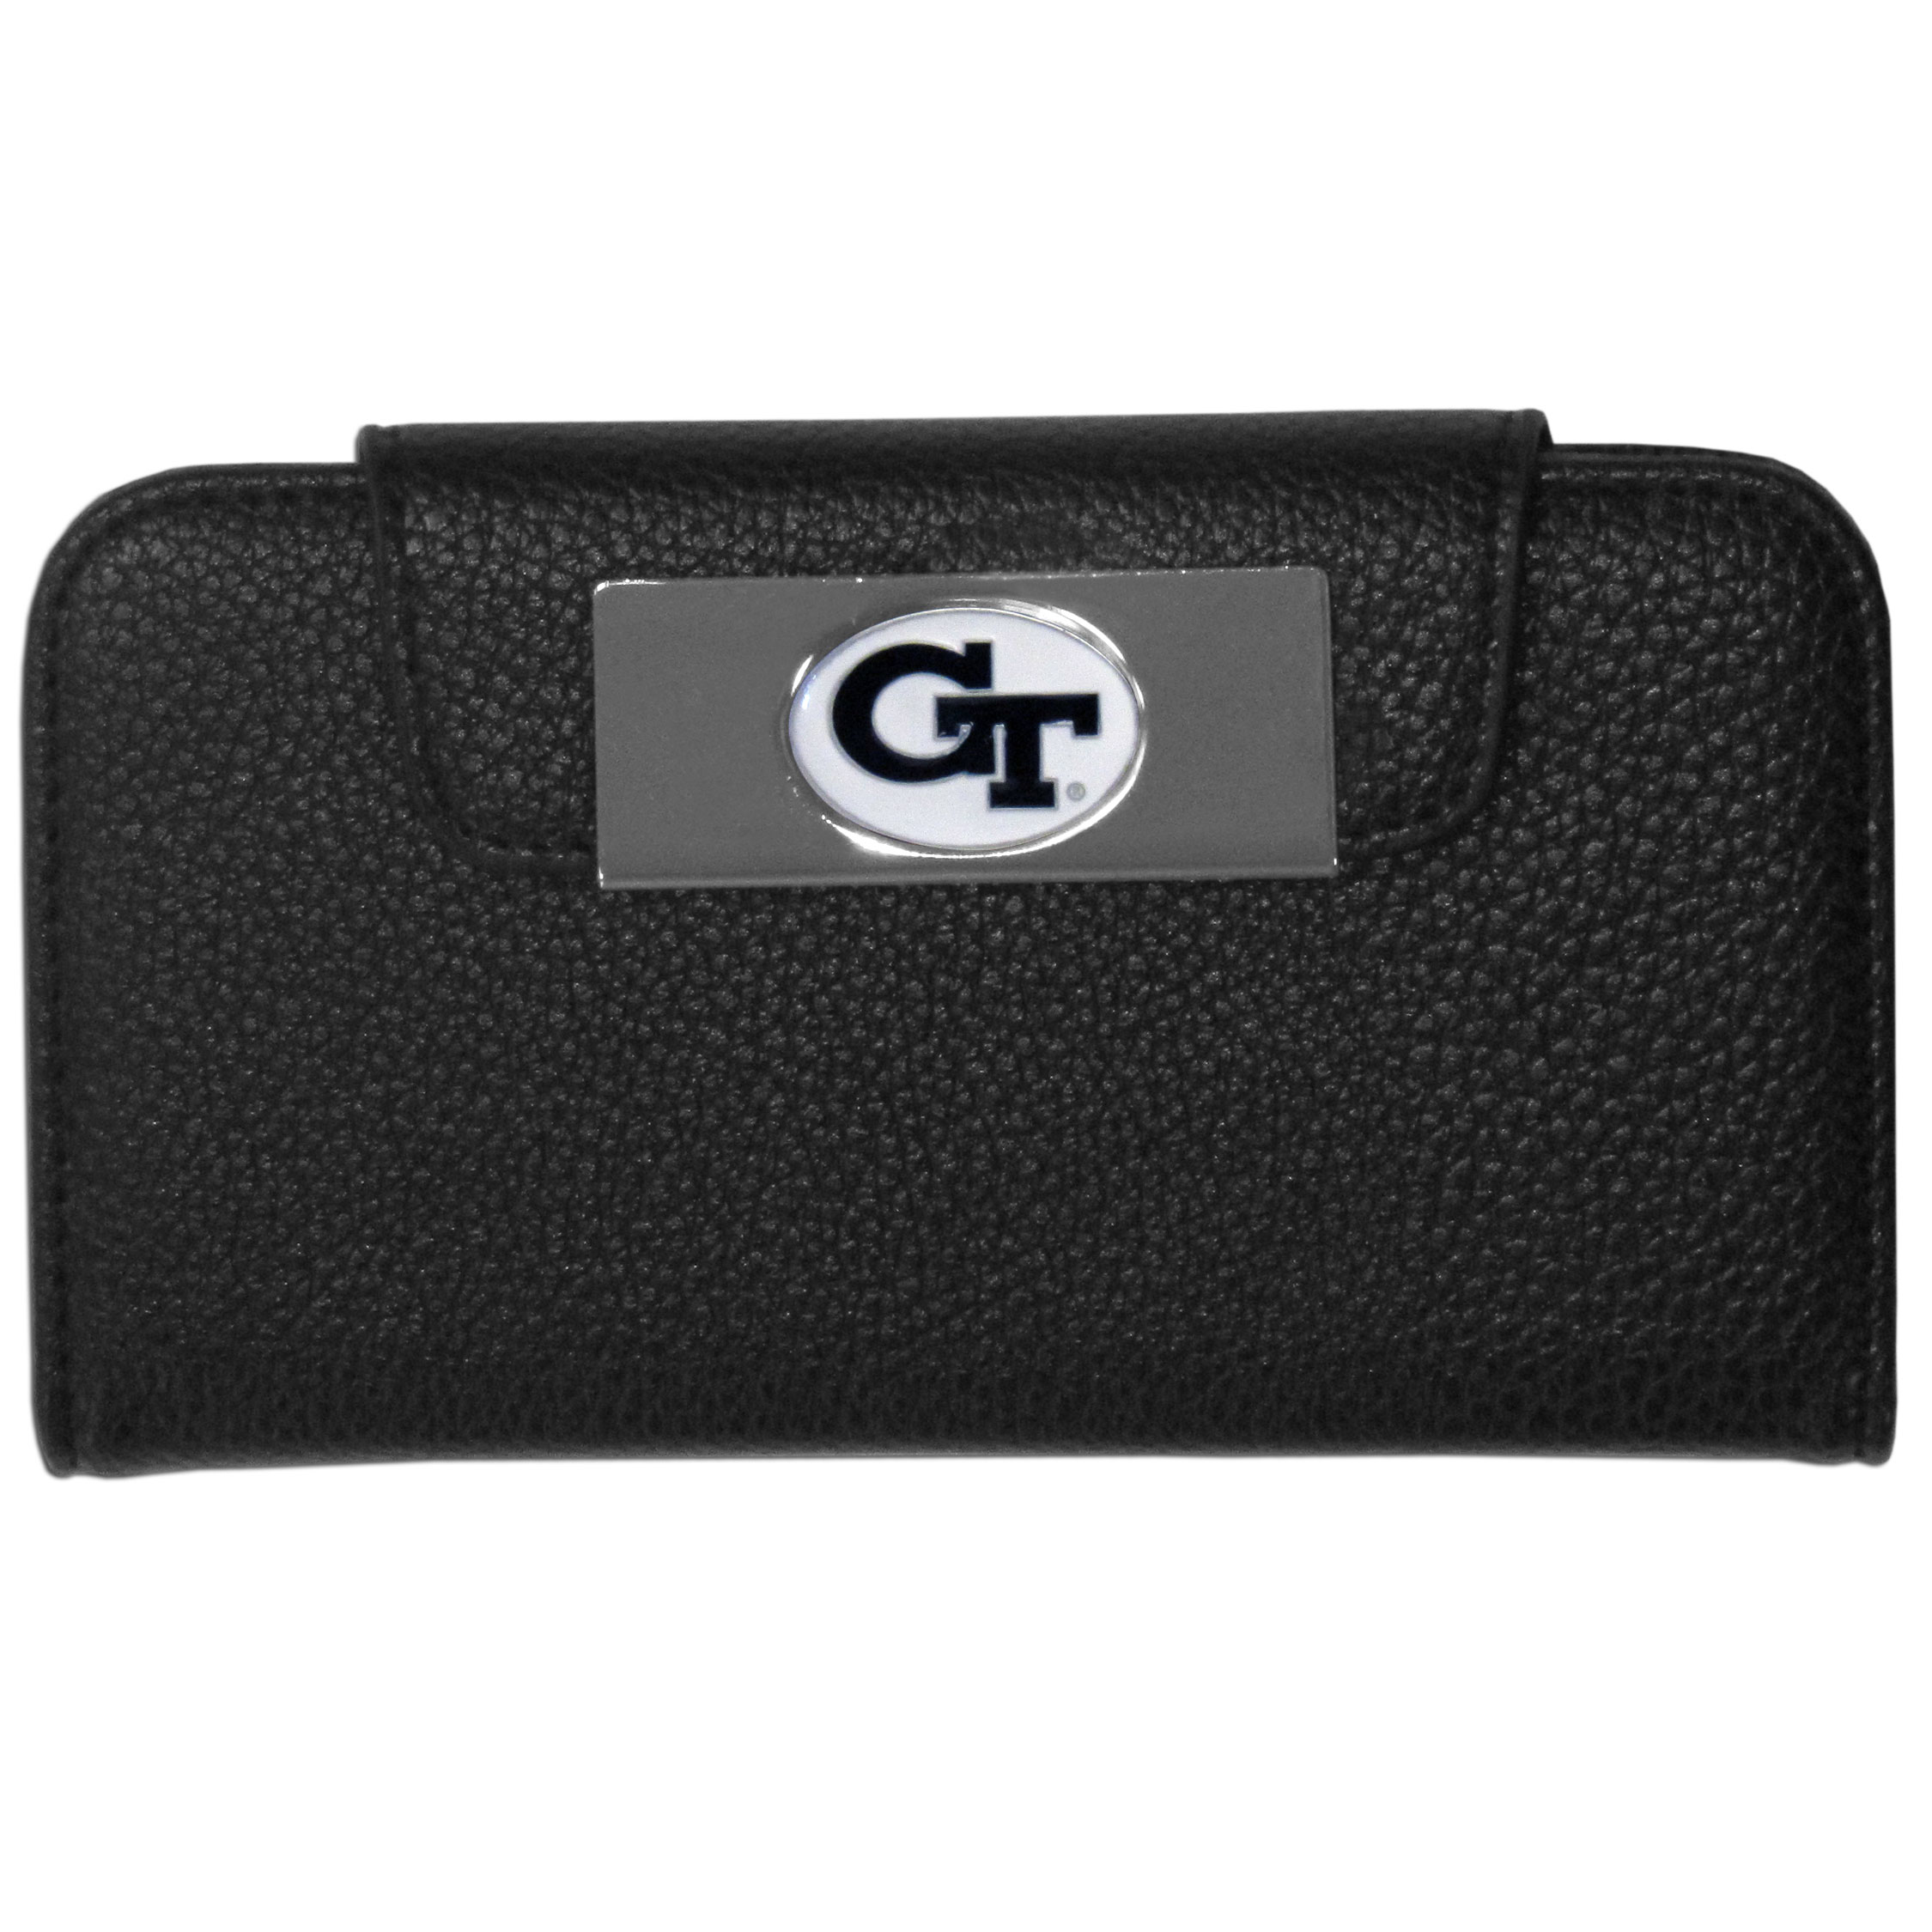 Georgia Tech Yellow Jackets iPhone 5/5S Wallet Case - This new & wildly popular case is ideal for those who like to travel light! The stylish case has an inner hard shell that securely holds your phone while allowing complete access to the phone's functionality. The flip cover has slots for credit cards, business cards and identification. The magnetic flip cover has a metal Georgia Tech Yellow Jackets emblem on a high polish chrome backing. Fits the iPhone 5/5S